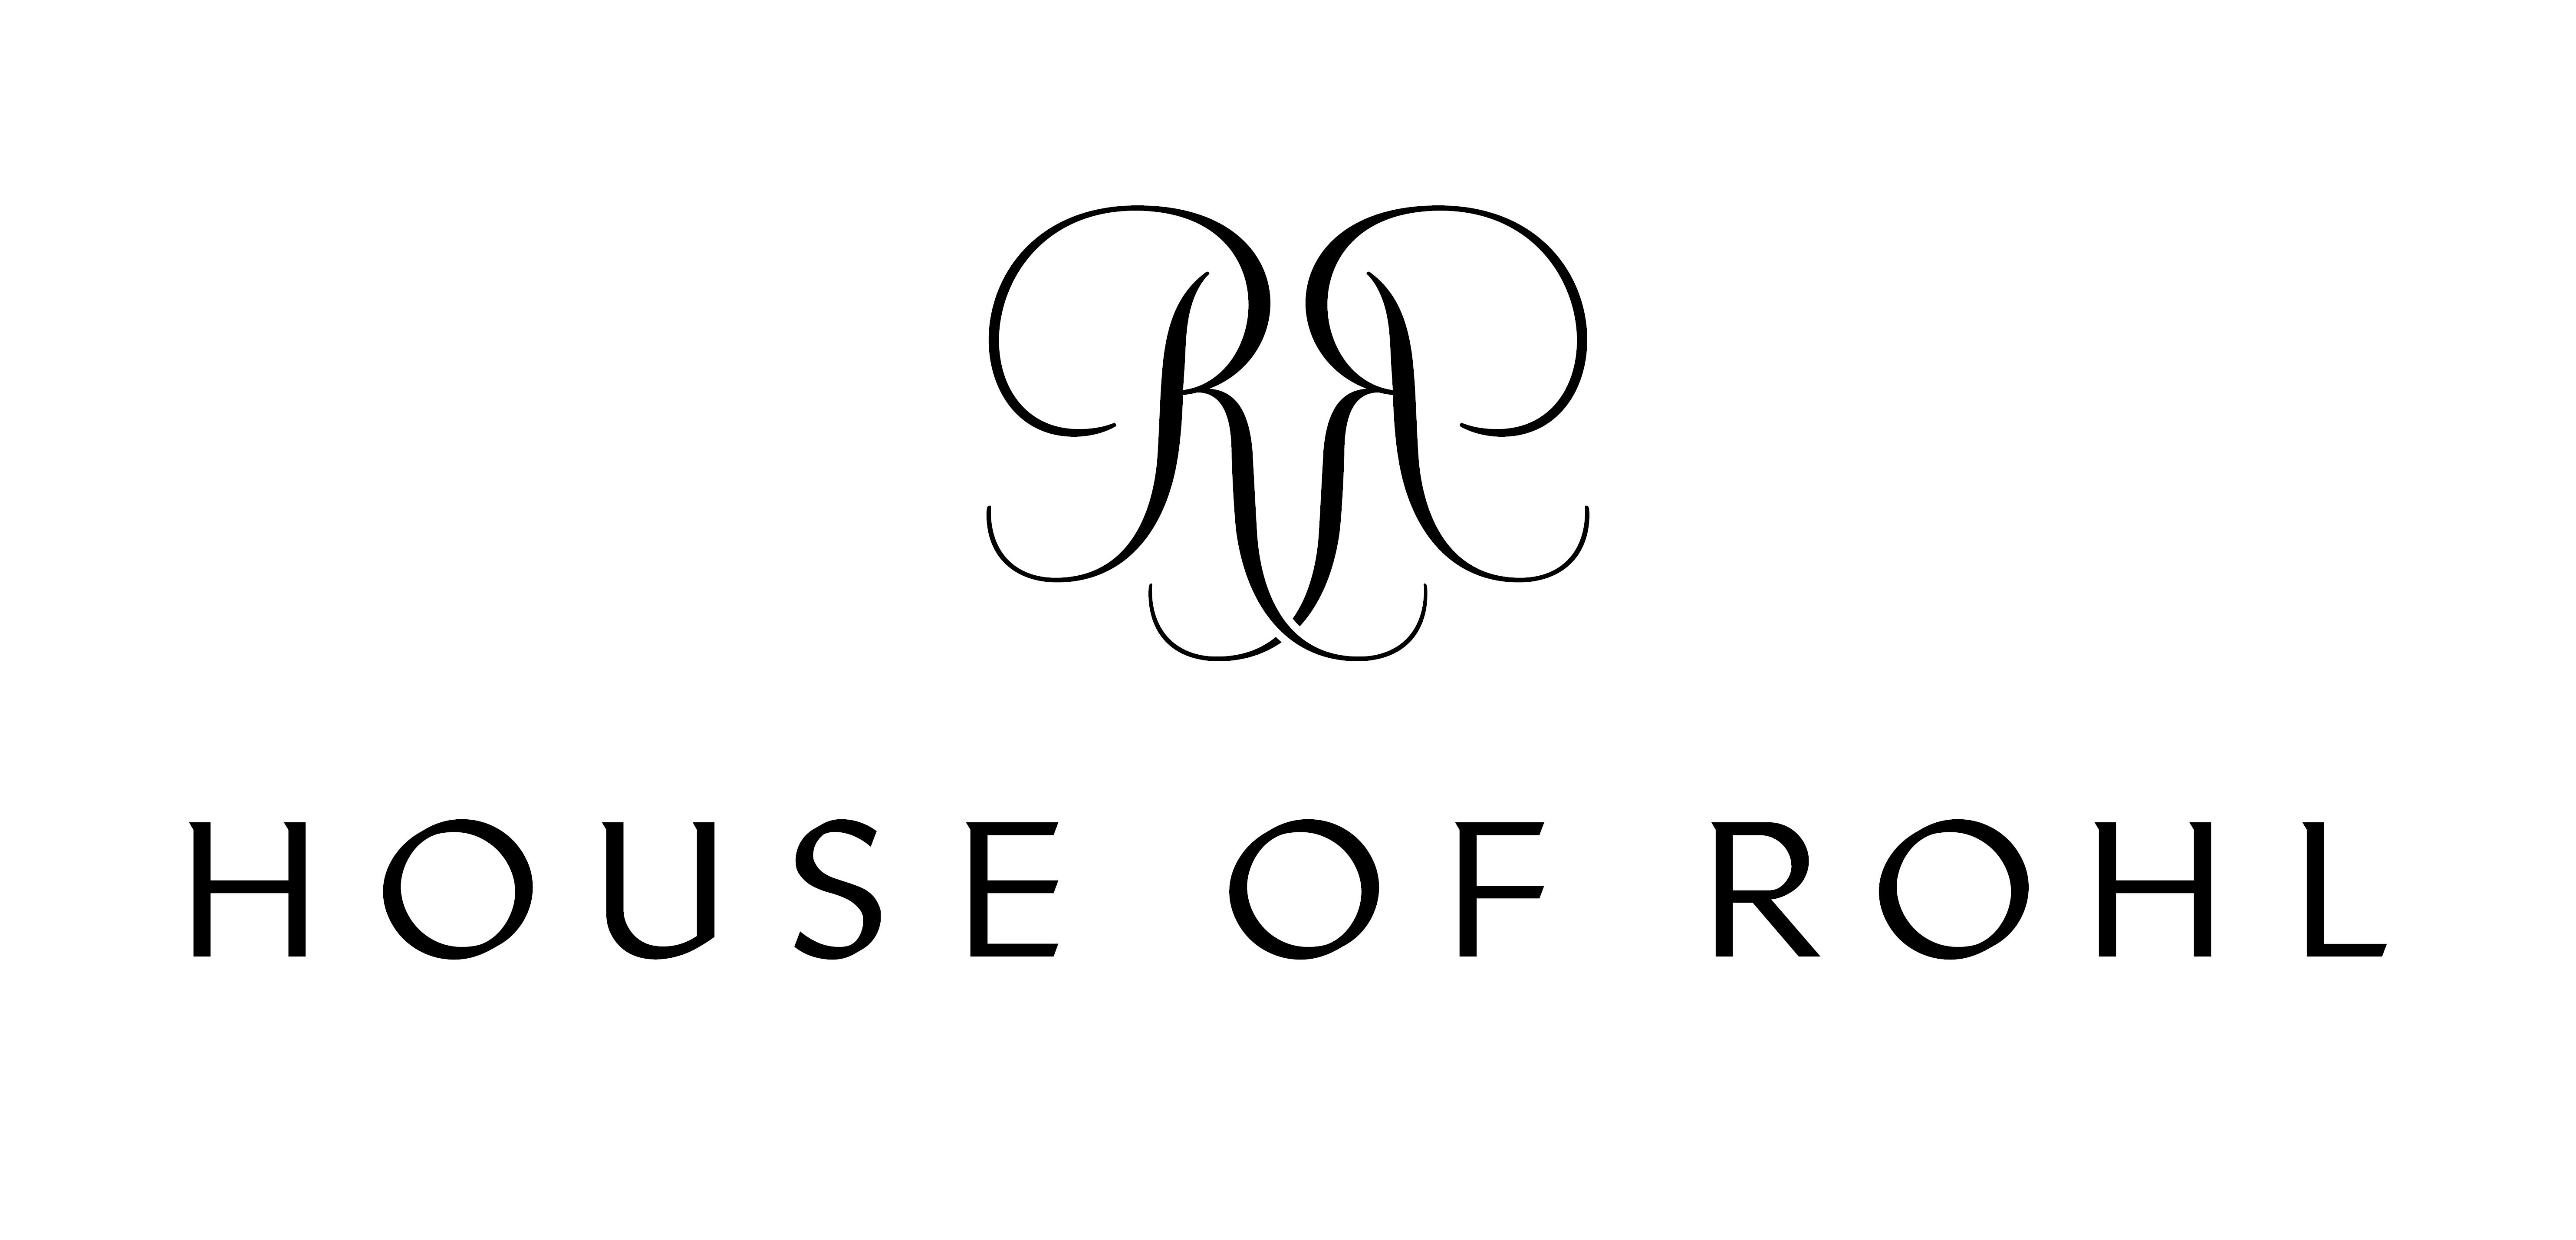 The House Of Rohl